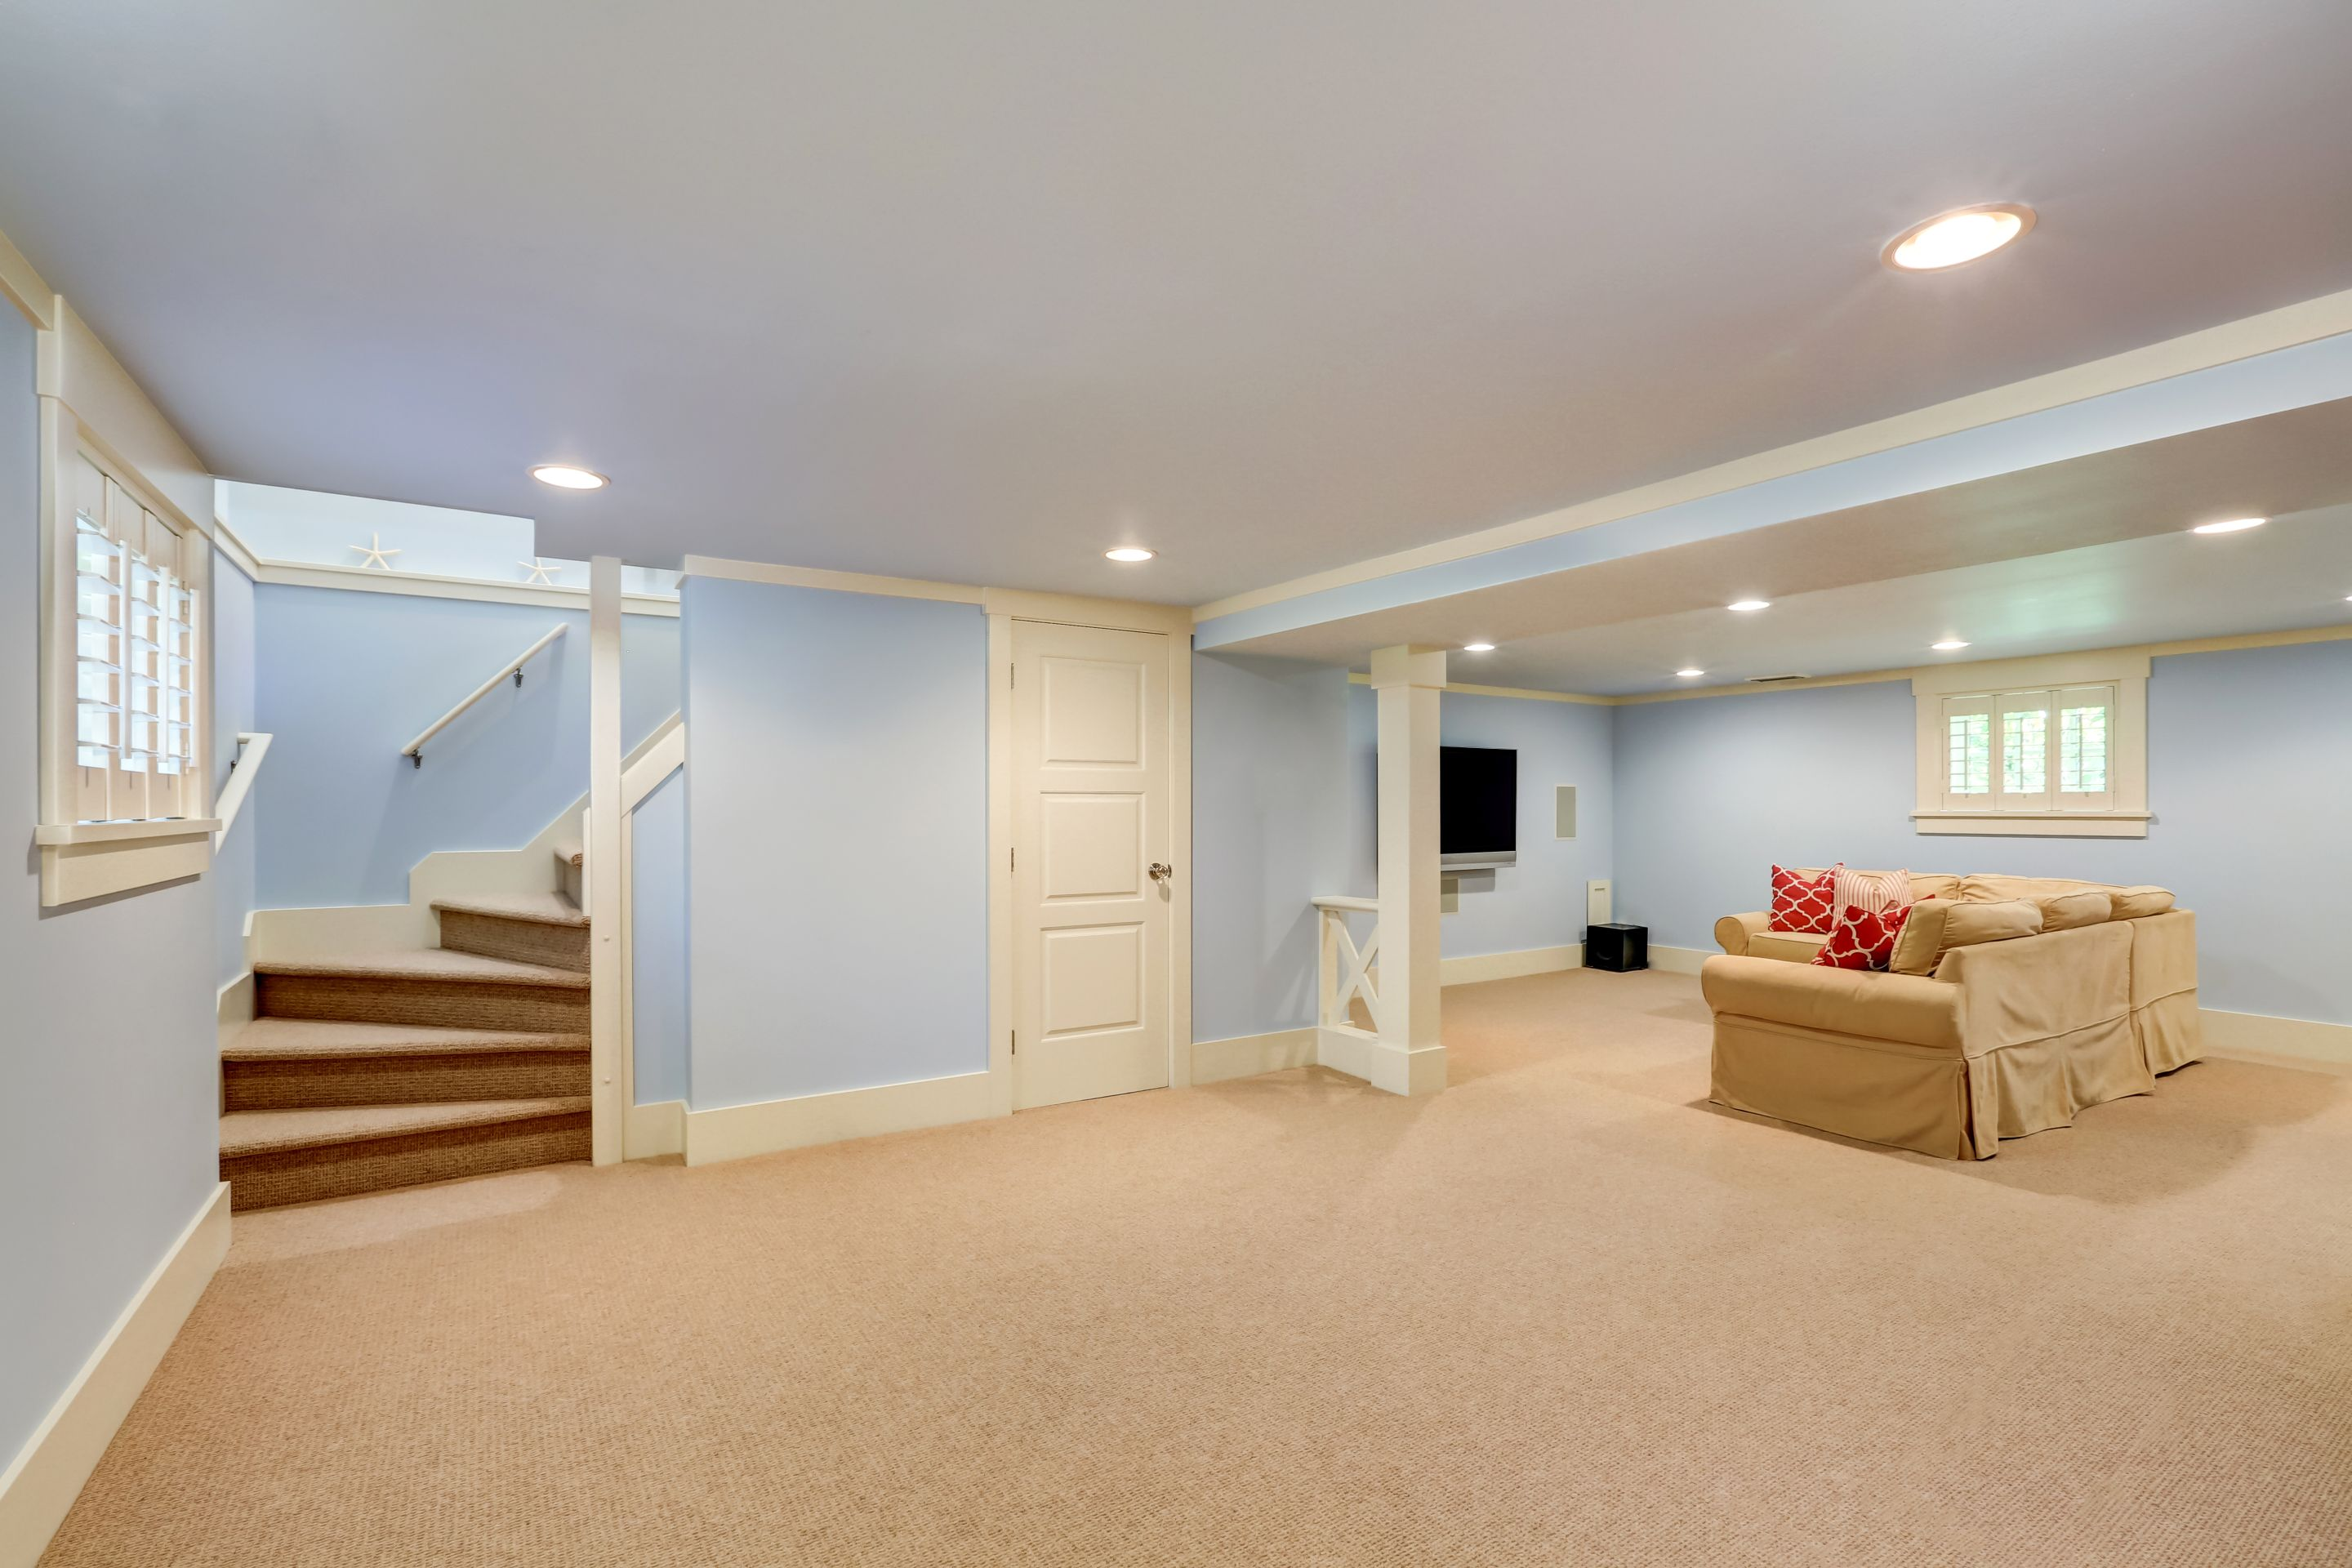 Basement Renovation Ideas Dealing With The Low Ceiling Smartguy